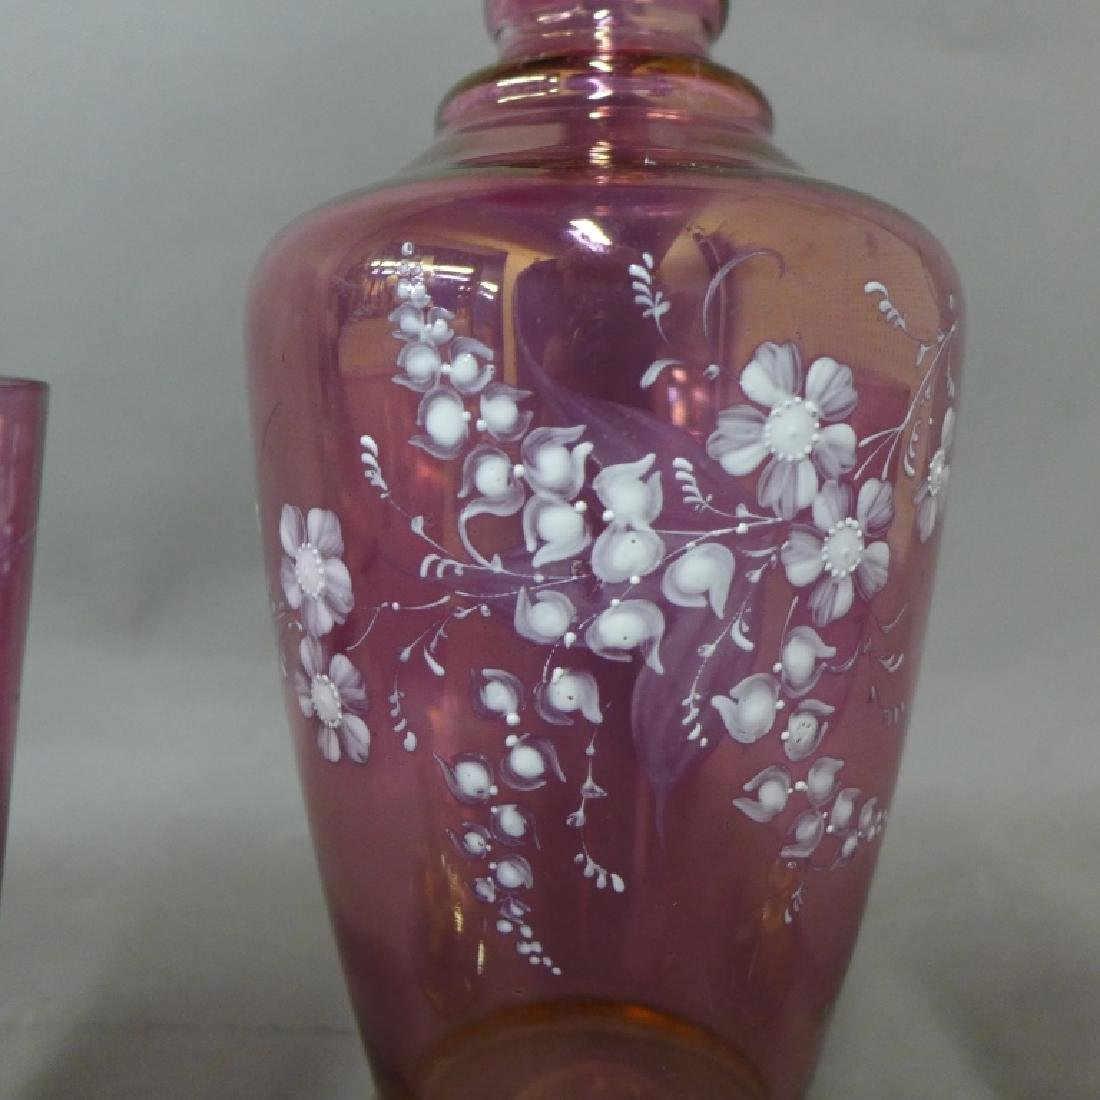 Amethyst Glass and Floral Decorated Decanter - 6